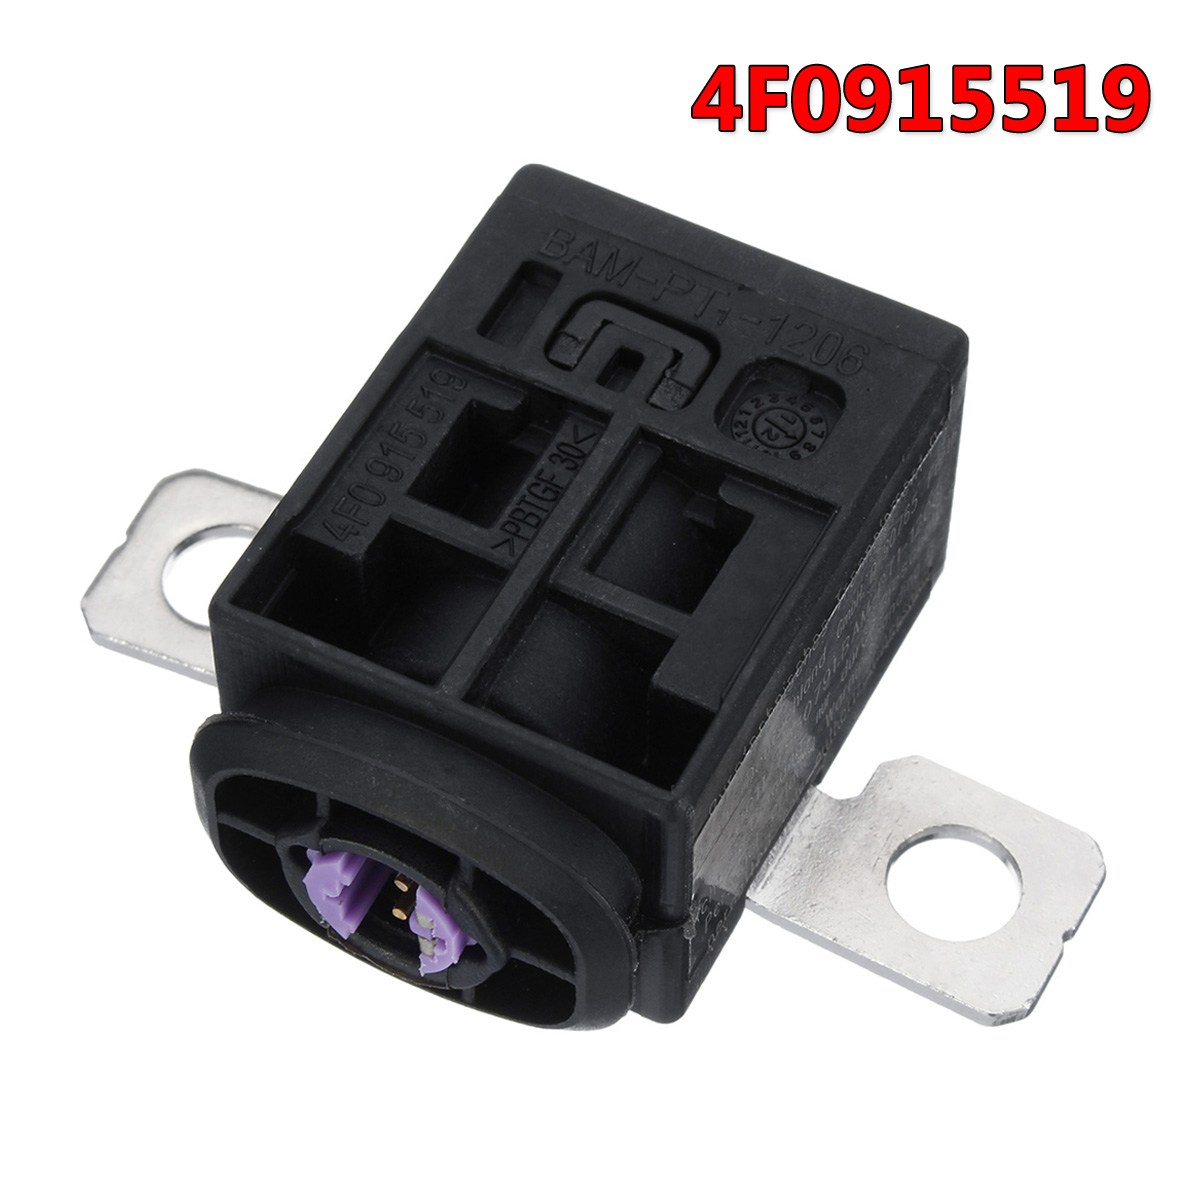 Mayitr Battery Fuse Box Overload Protection Trip For Audi A4 A5 A6 S6 Cut Off Q5 A7 Vw